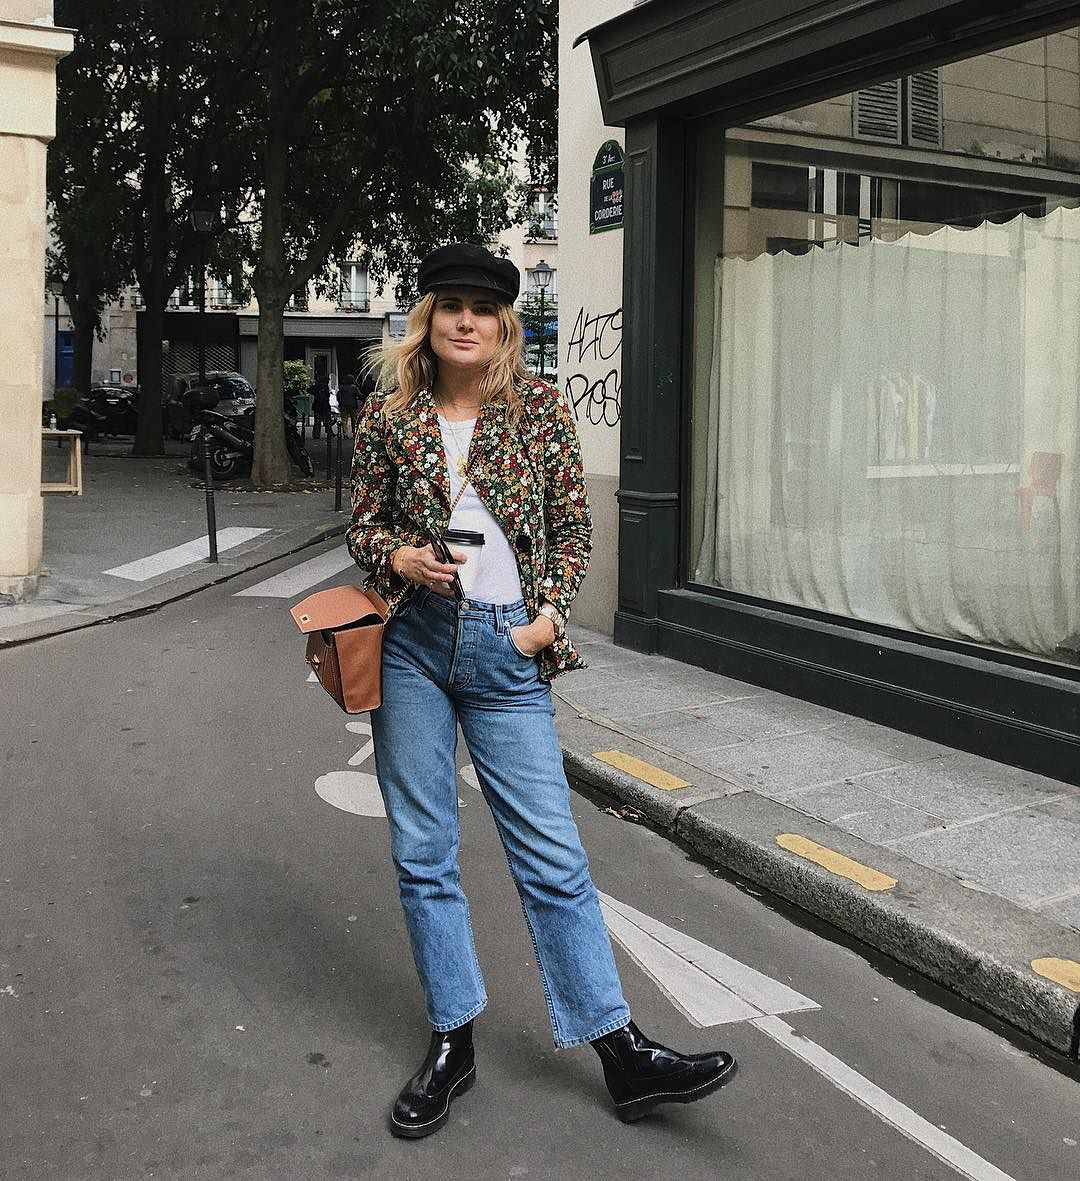 .@Fashion_Me_Now and her Suzy bag in Paris. Vive le weekend! https://t.co/MnKhuy8gEn